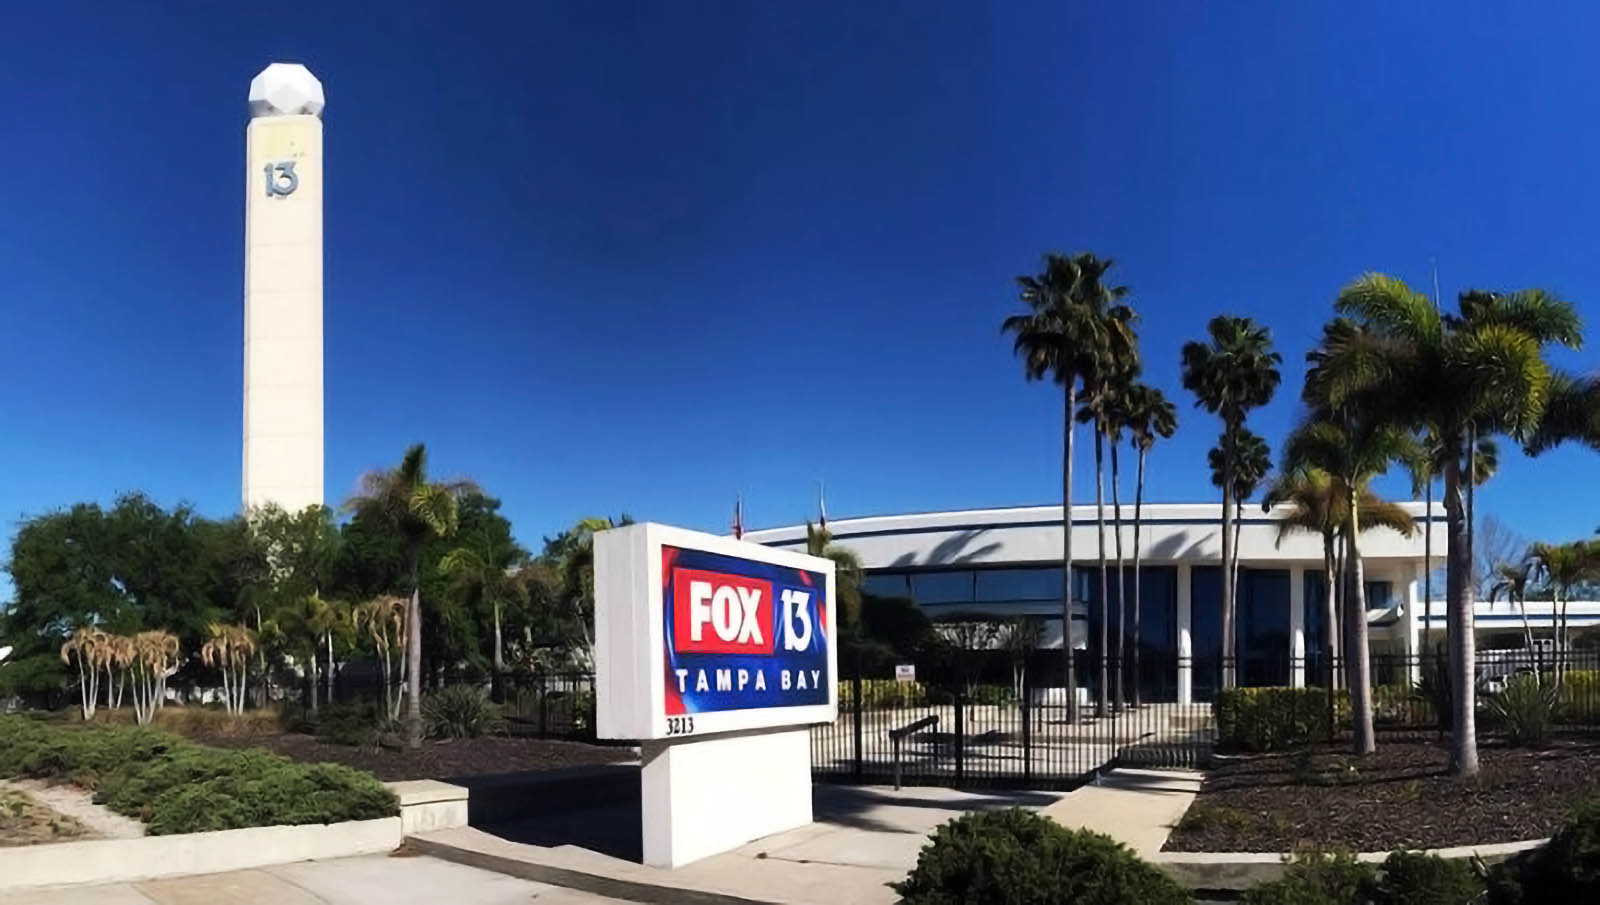 Fox 13 News Tempa Bay Building located at 3213 West Kennedy Blvd.Tampa, FL